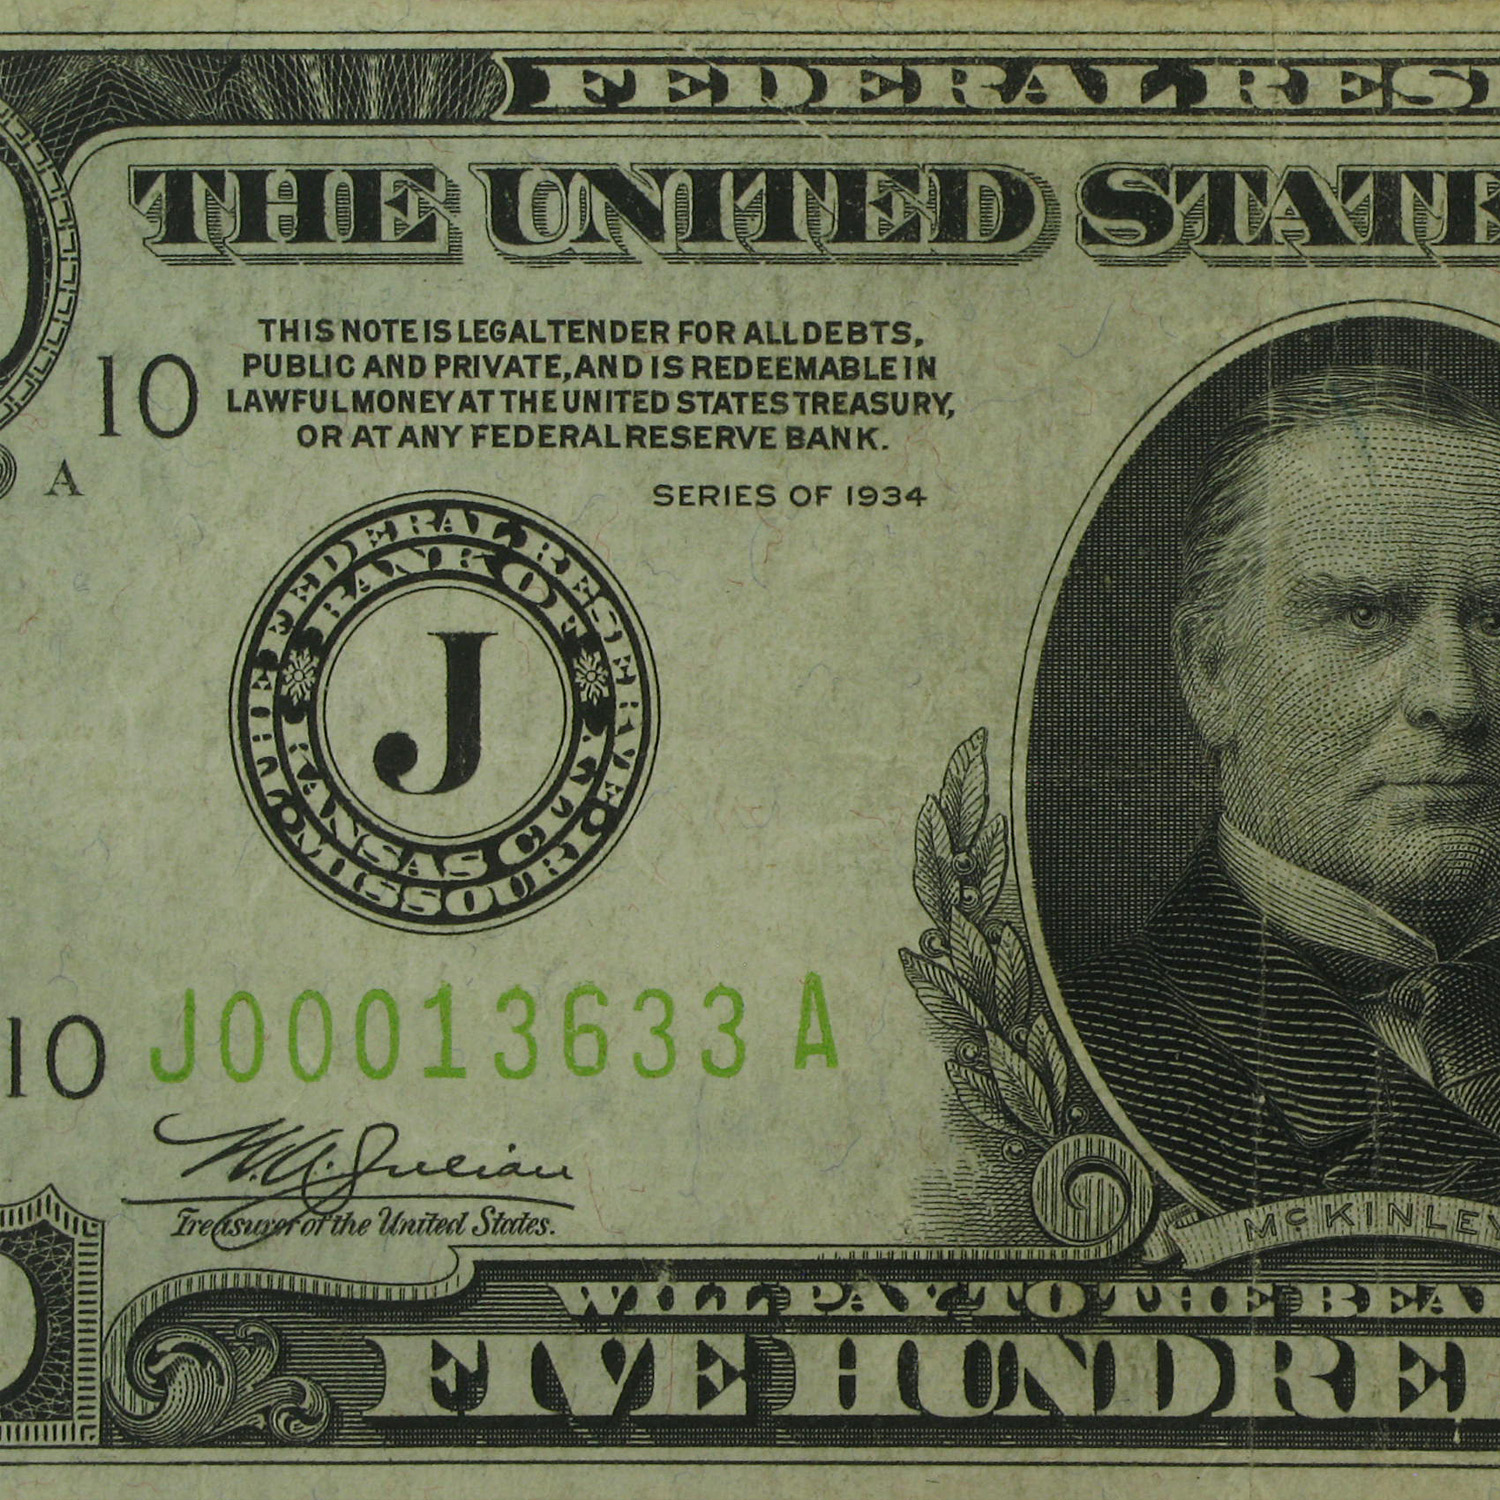 1934 (J-Kansas City) $500 FRN LGS (Very Fine)